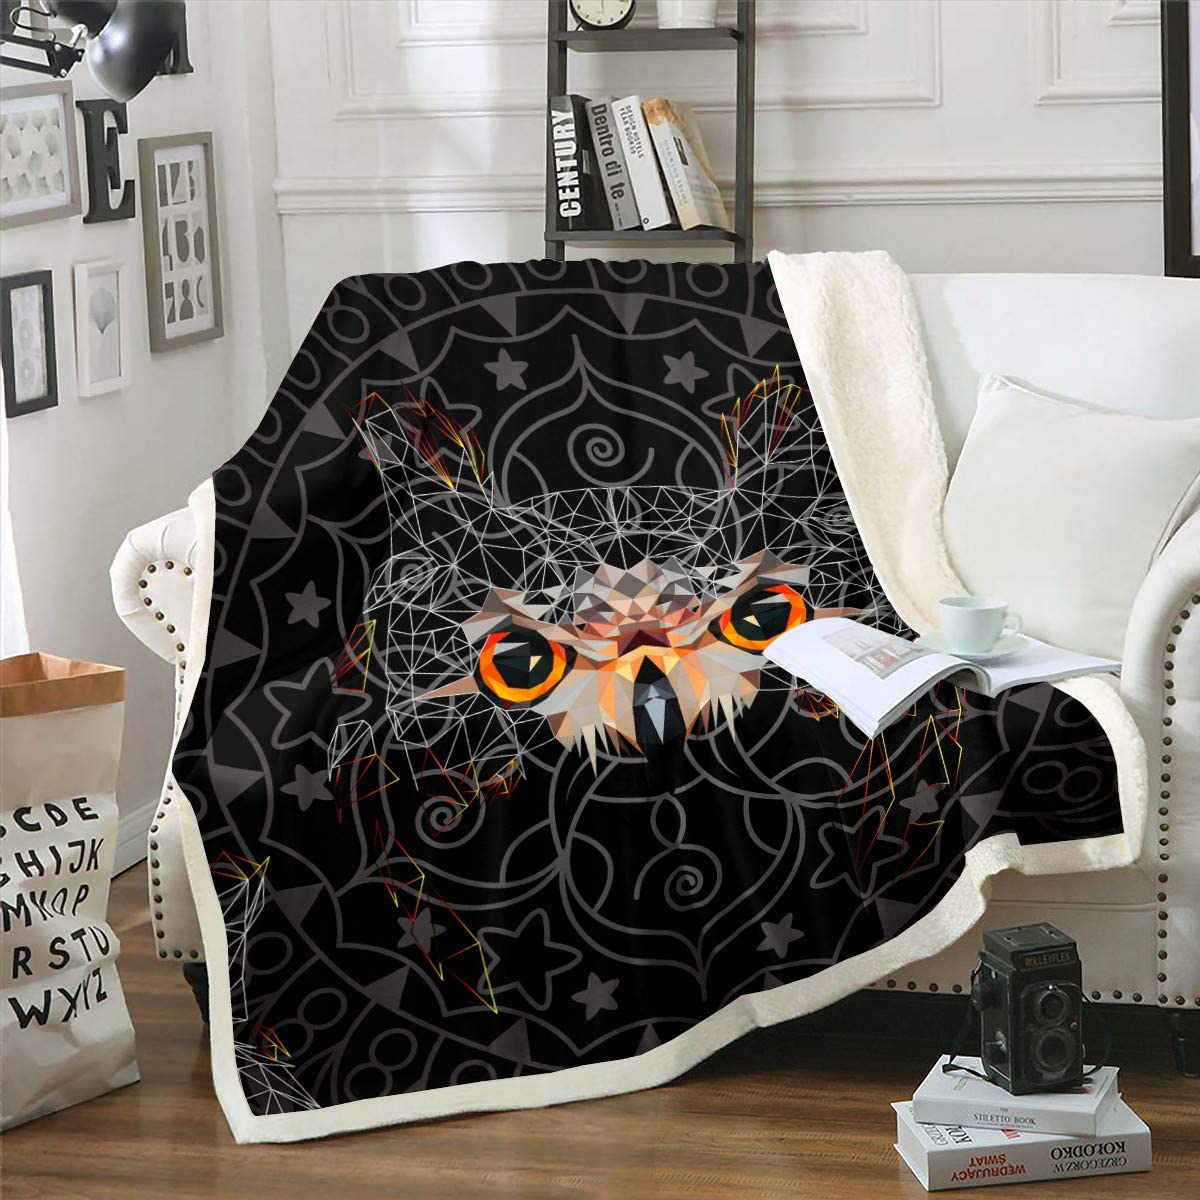 Castle Fairy Black Eyes Owl Bird Blanket Sherpa Sofa Couch Chair Rapid rise Ranking integrated 1st place